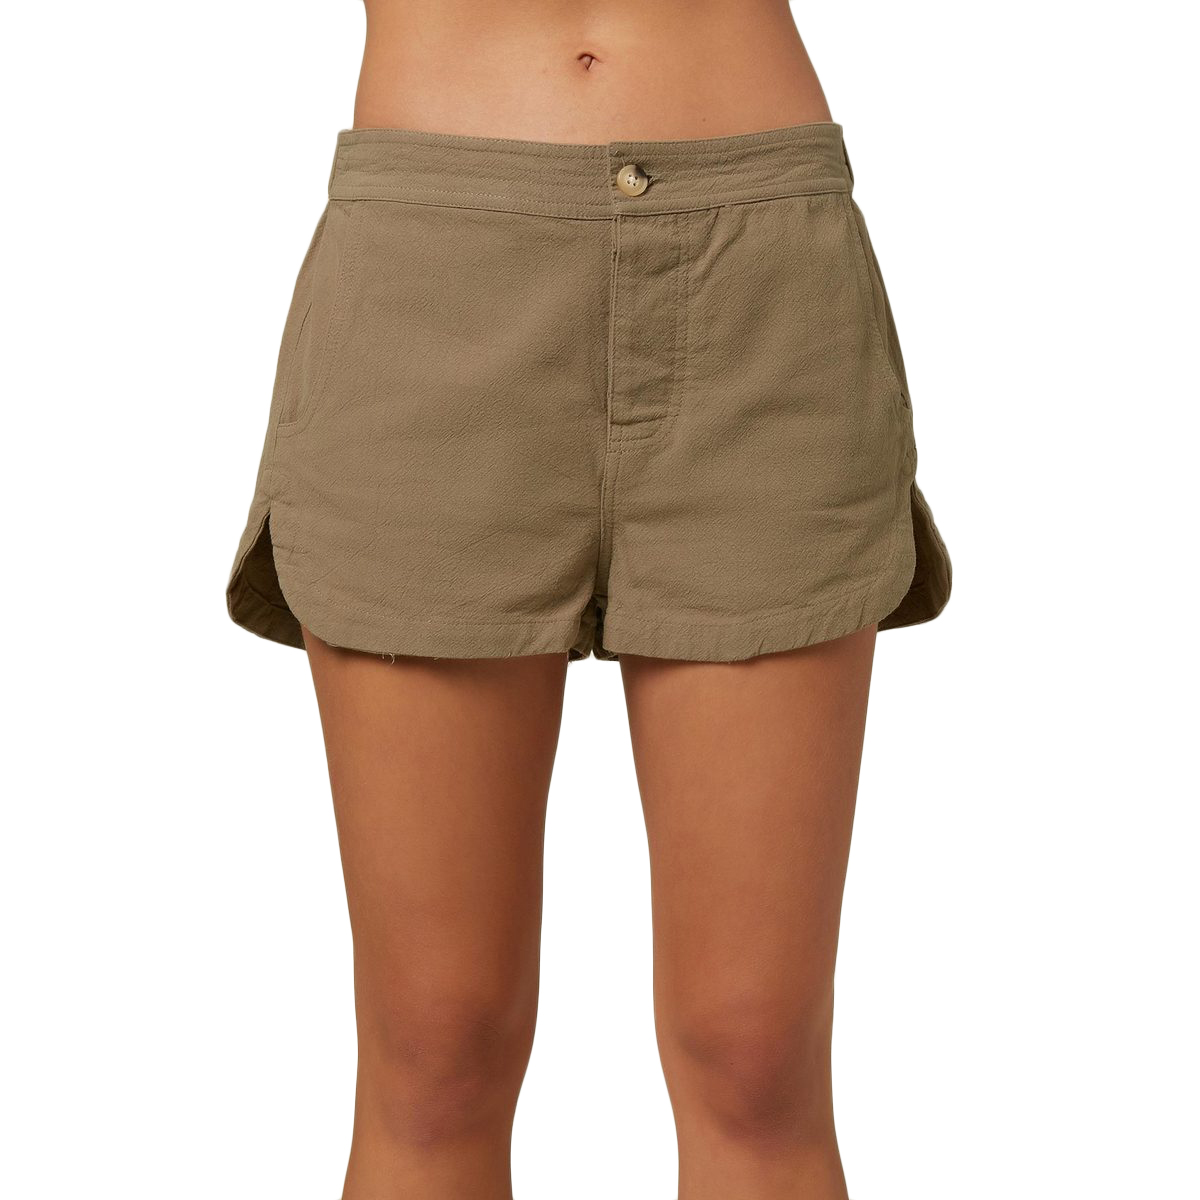 O'neill Women's Bismark Shorts - Green, S